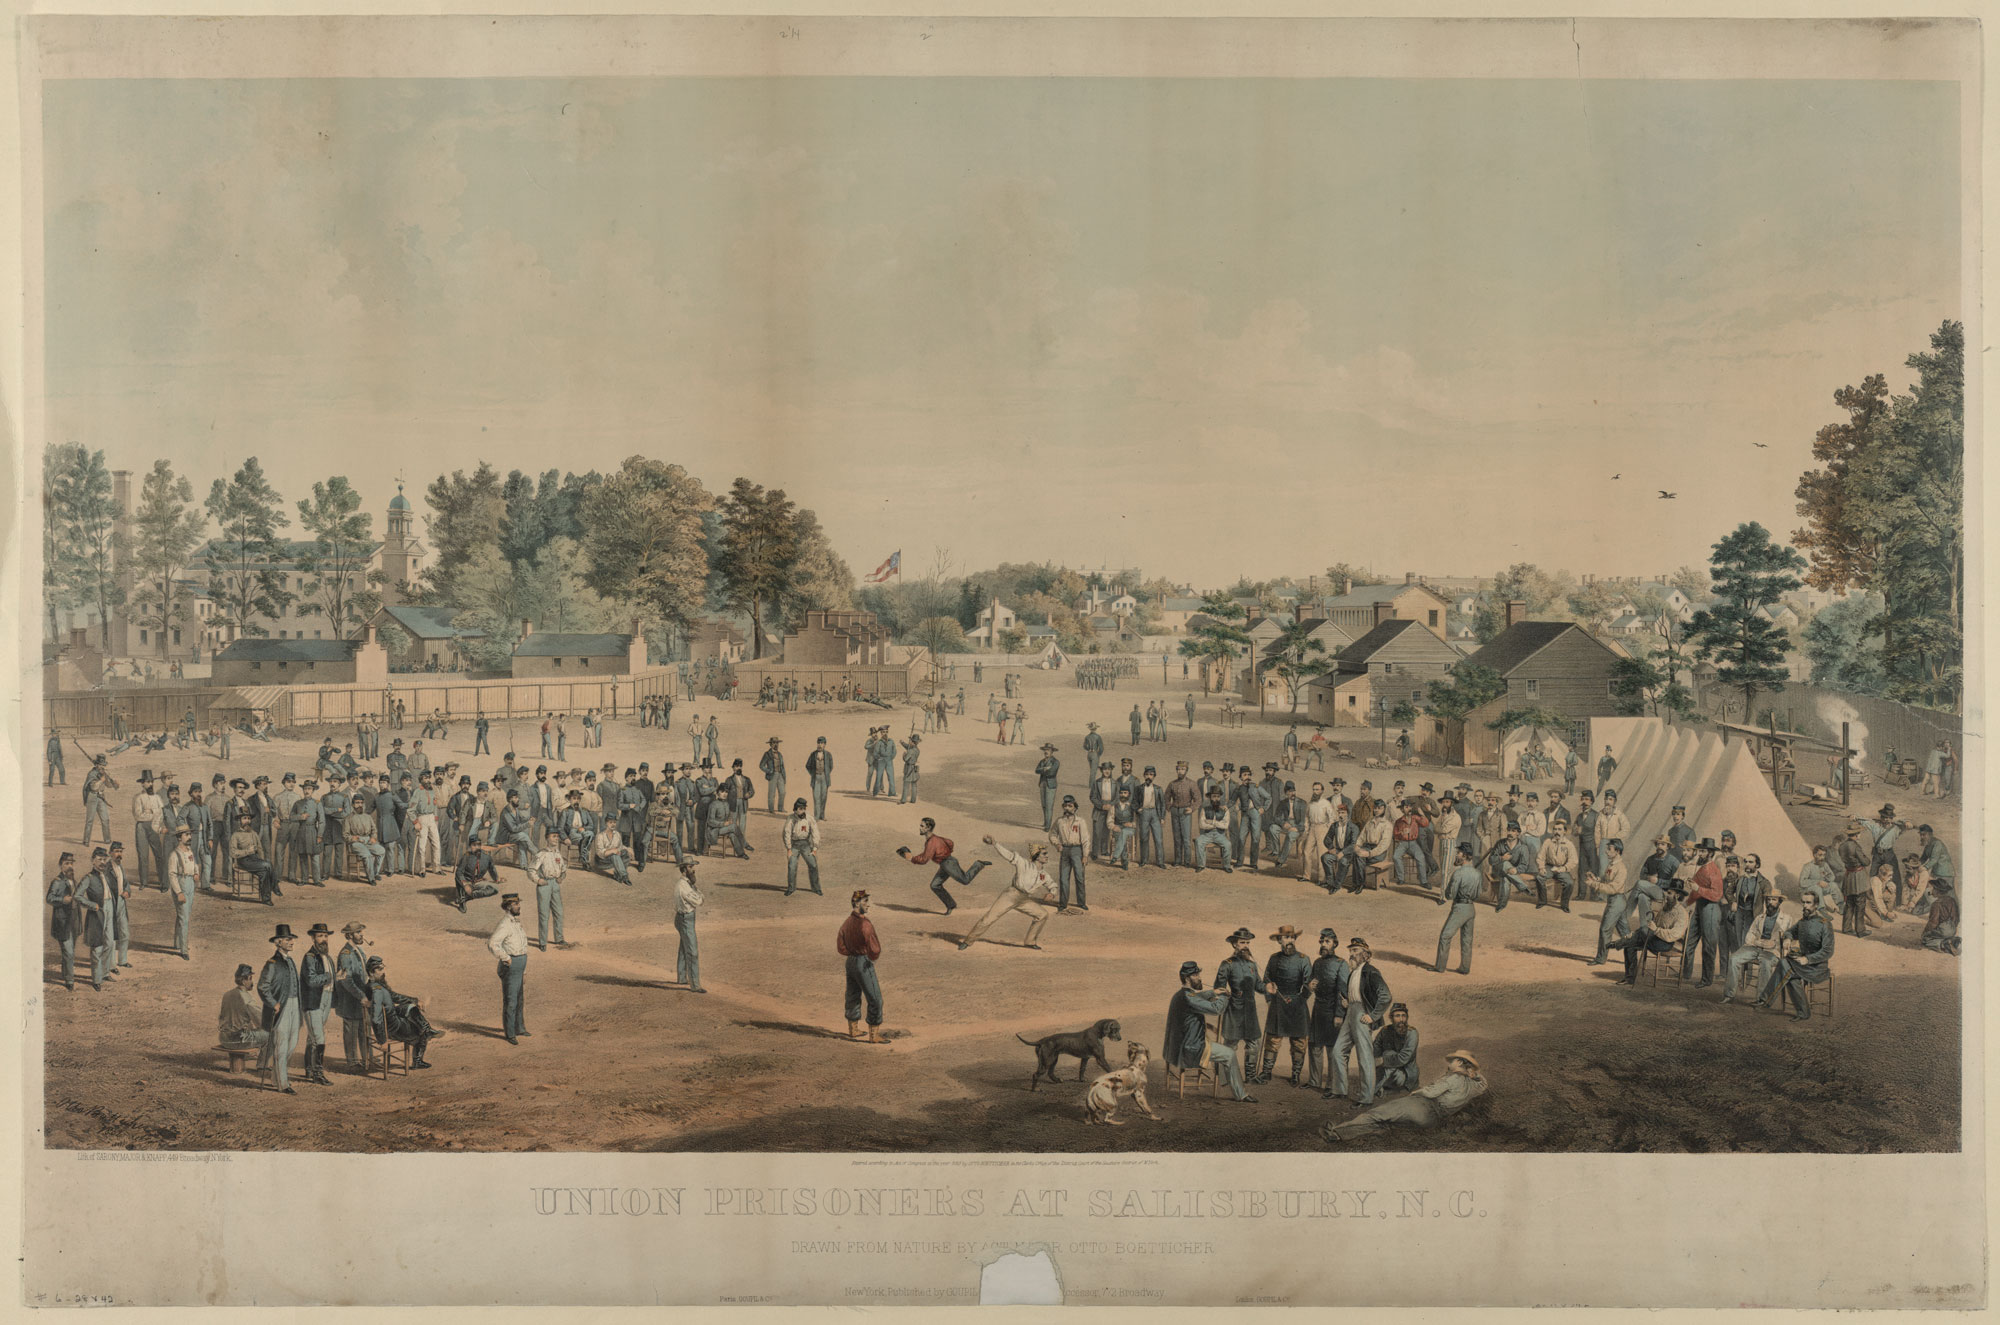 Army color casing ceremony script - Civil War Soldiers Waited To Fight More Than They Actually Fought To Pass Idle Time Soldiers Took Part In A Near Countless Variety Of Games And Contests